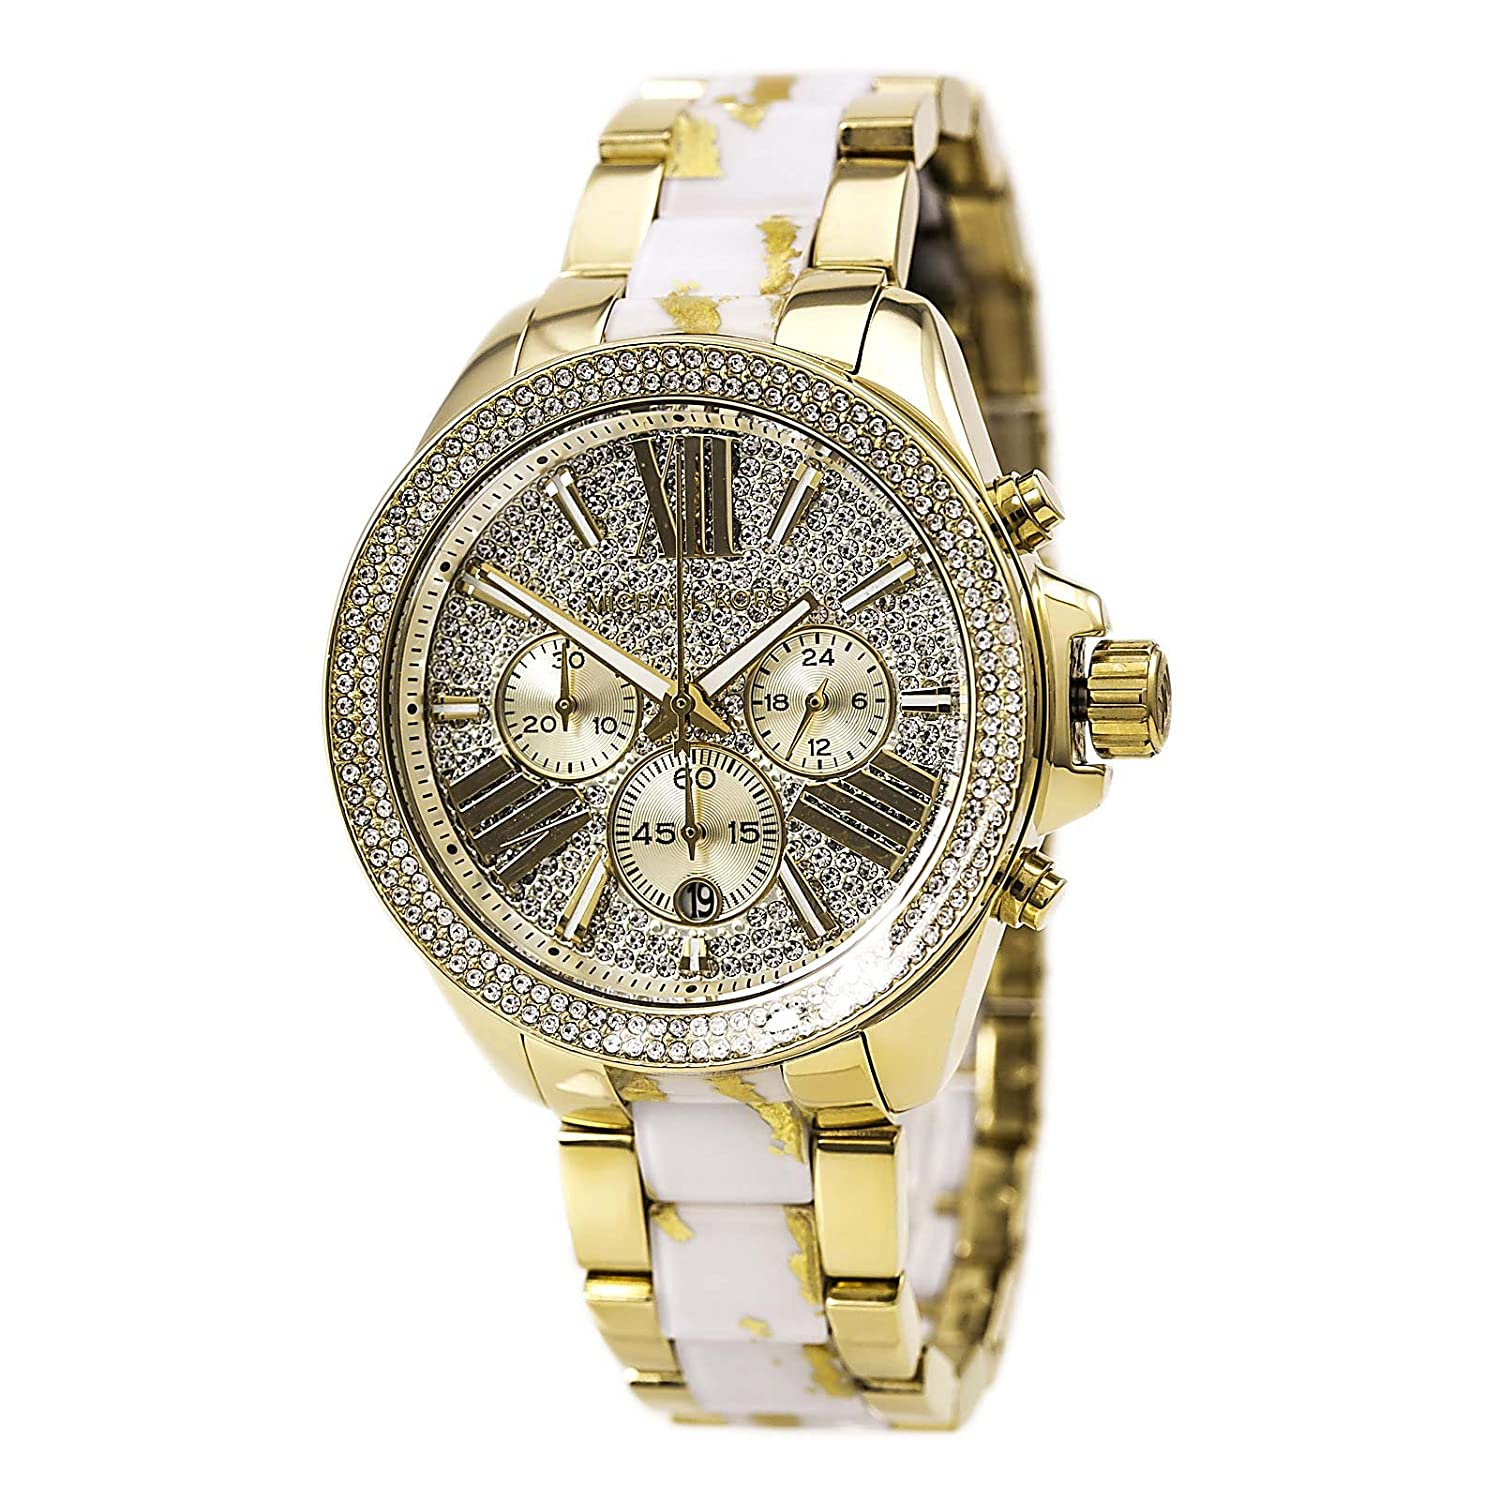 f23723c5d0d1 Amazon.com  Michael Kors Wren Ladies Watch MK6157  Michael Kors  Watches